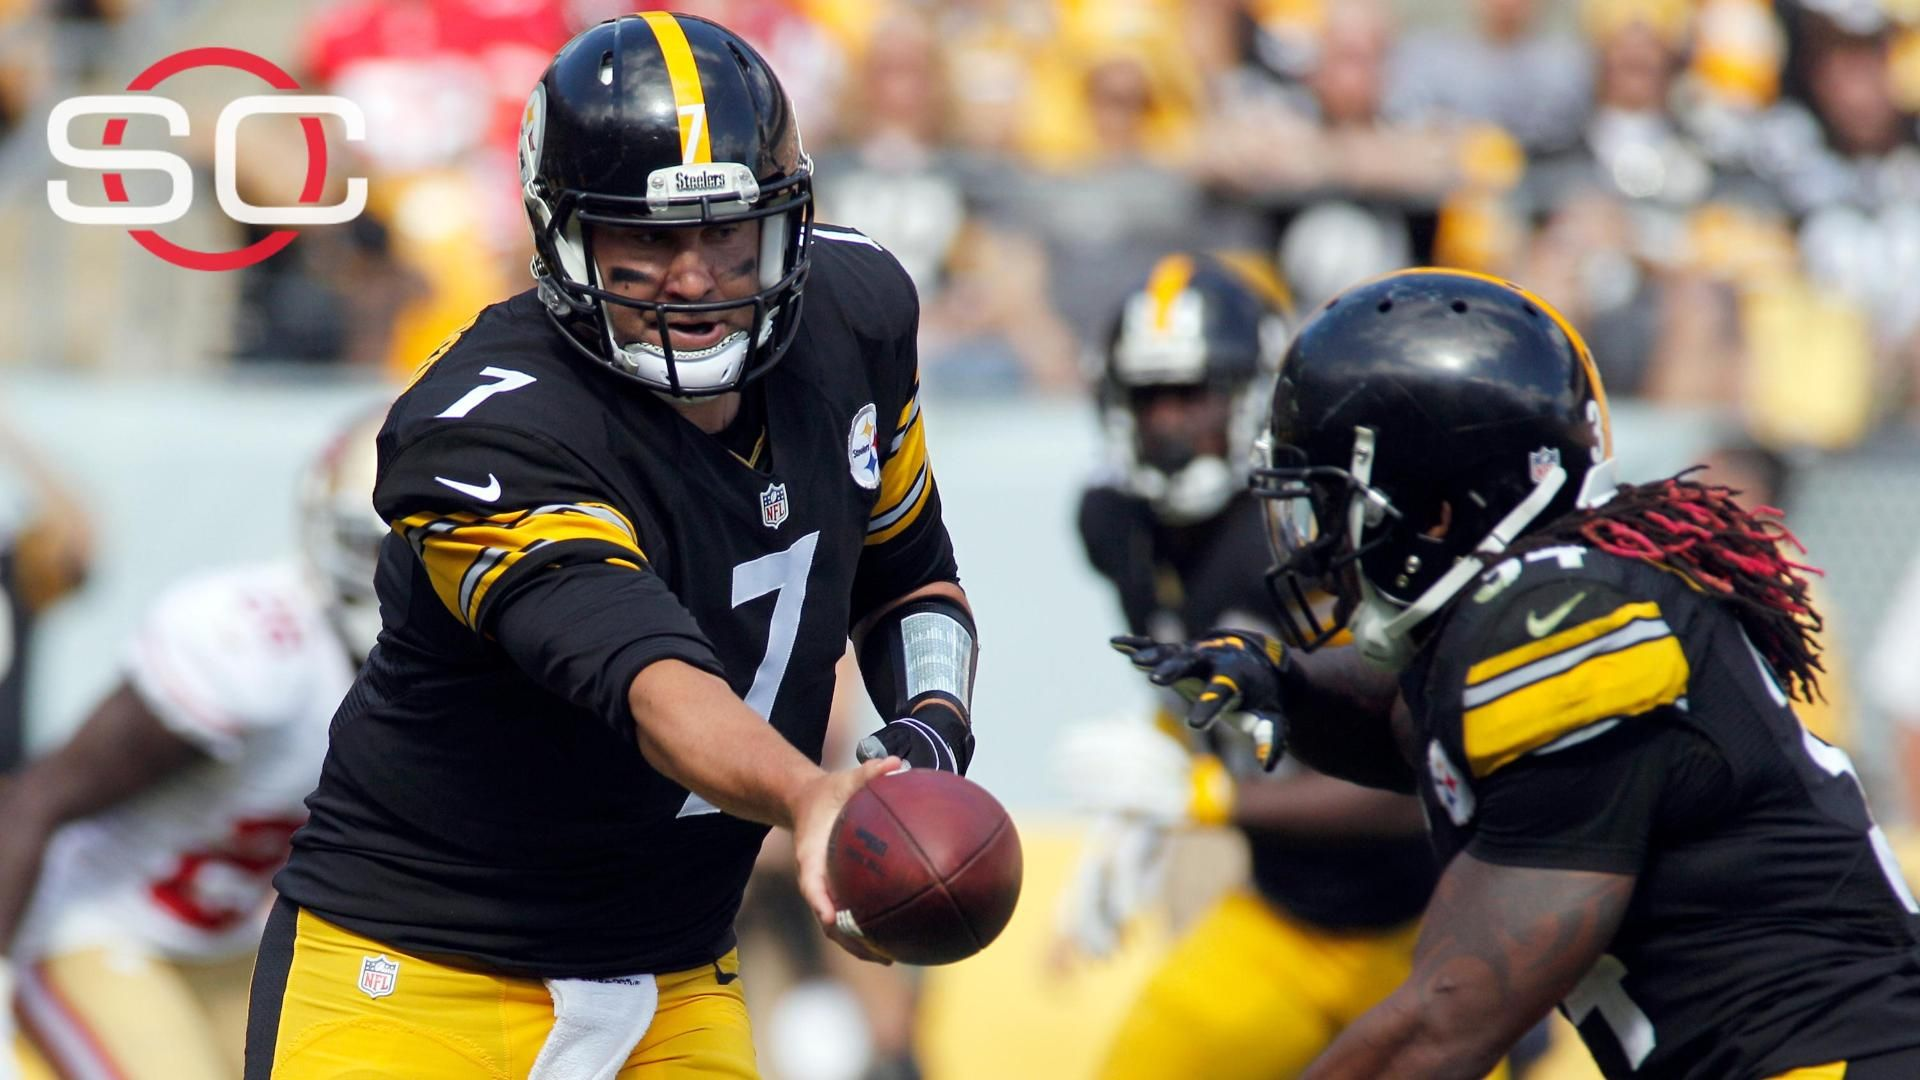 https://secure.espncdn.com/combiner/i?img=/media/motion/2015/0923/dm_150923_nfl_steelers_two_point_conversions1068/dm_150923_nfl_steelers_two_point_conversions1068.jpg